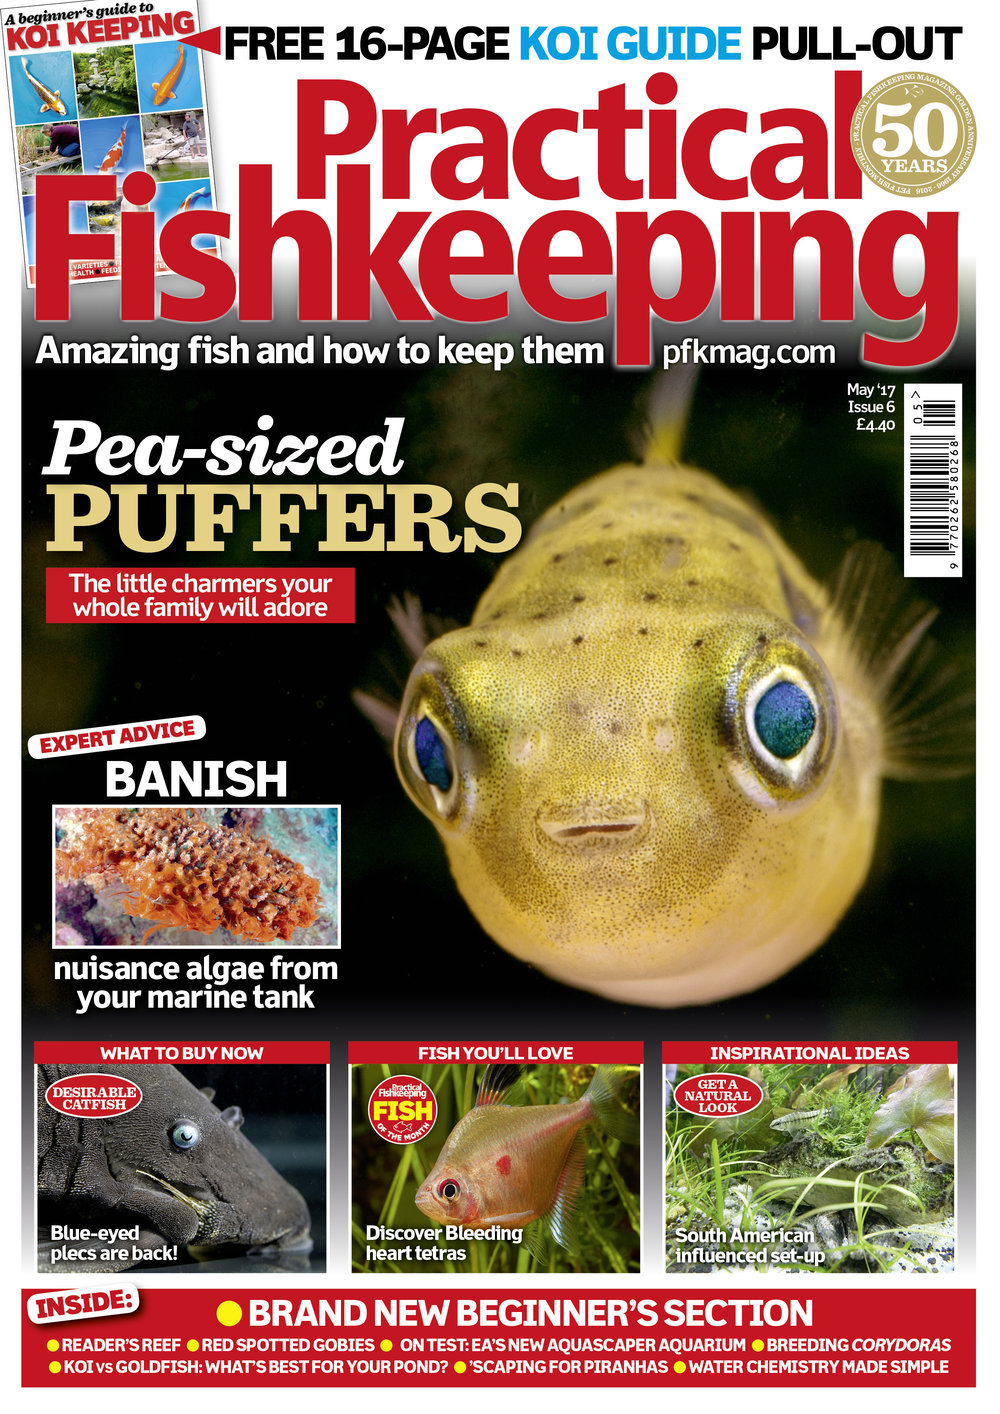 Our lovely May 2017 issue features a pull-out 16-page beginner's guide to Koi keeping. We introduce pea-sized puffers, the little charmers your whole family will adore. Get expert advice to banish nuisance algae from your marine tank, discover new fish in the shops and be inspired by our readers' tanks. All this and loads more in the packed May issue.